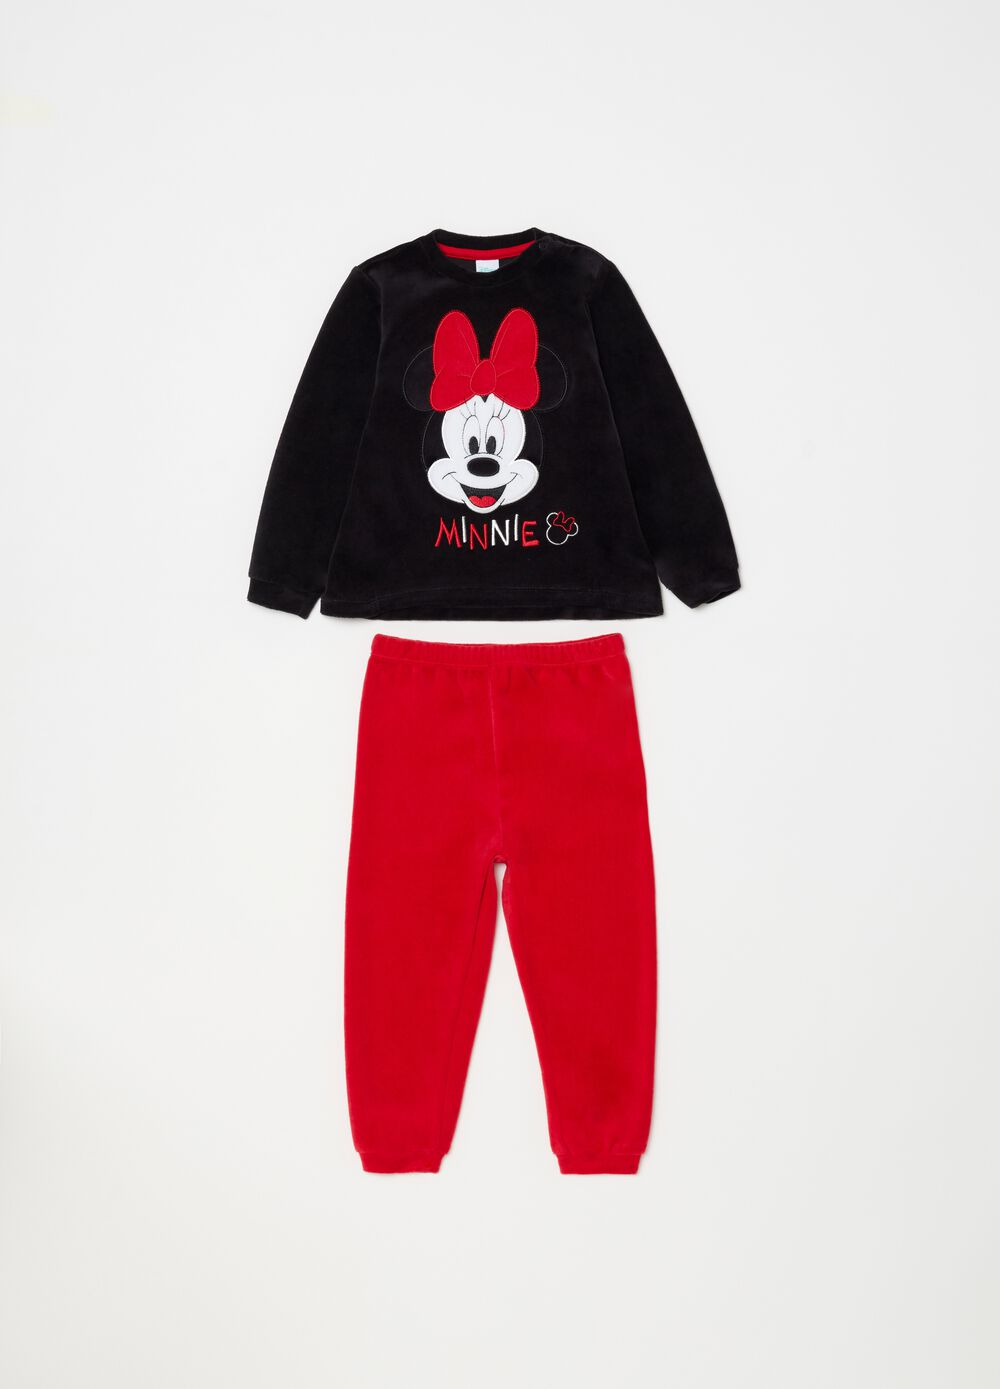 Long pyjamas with Disney Minnie Mouse embroidery